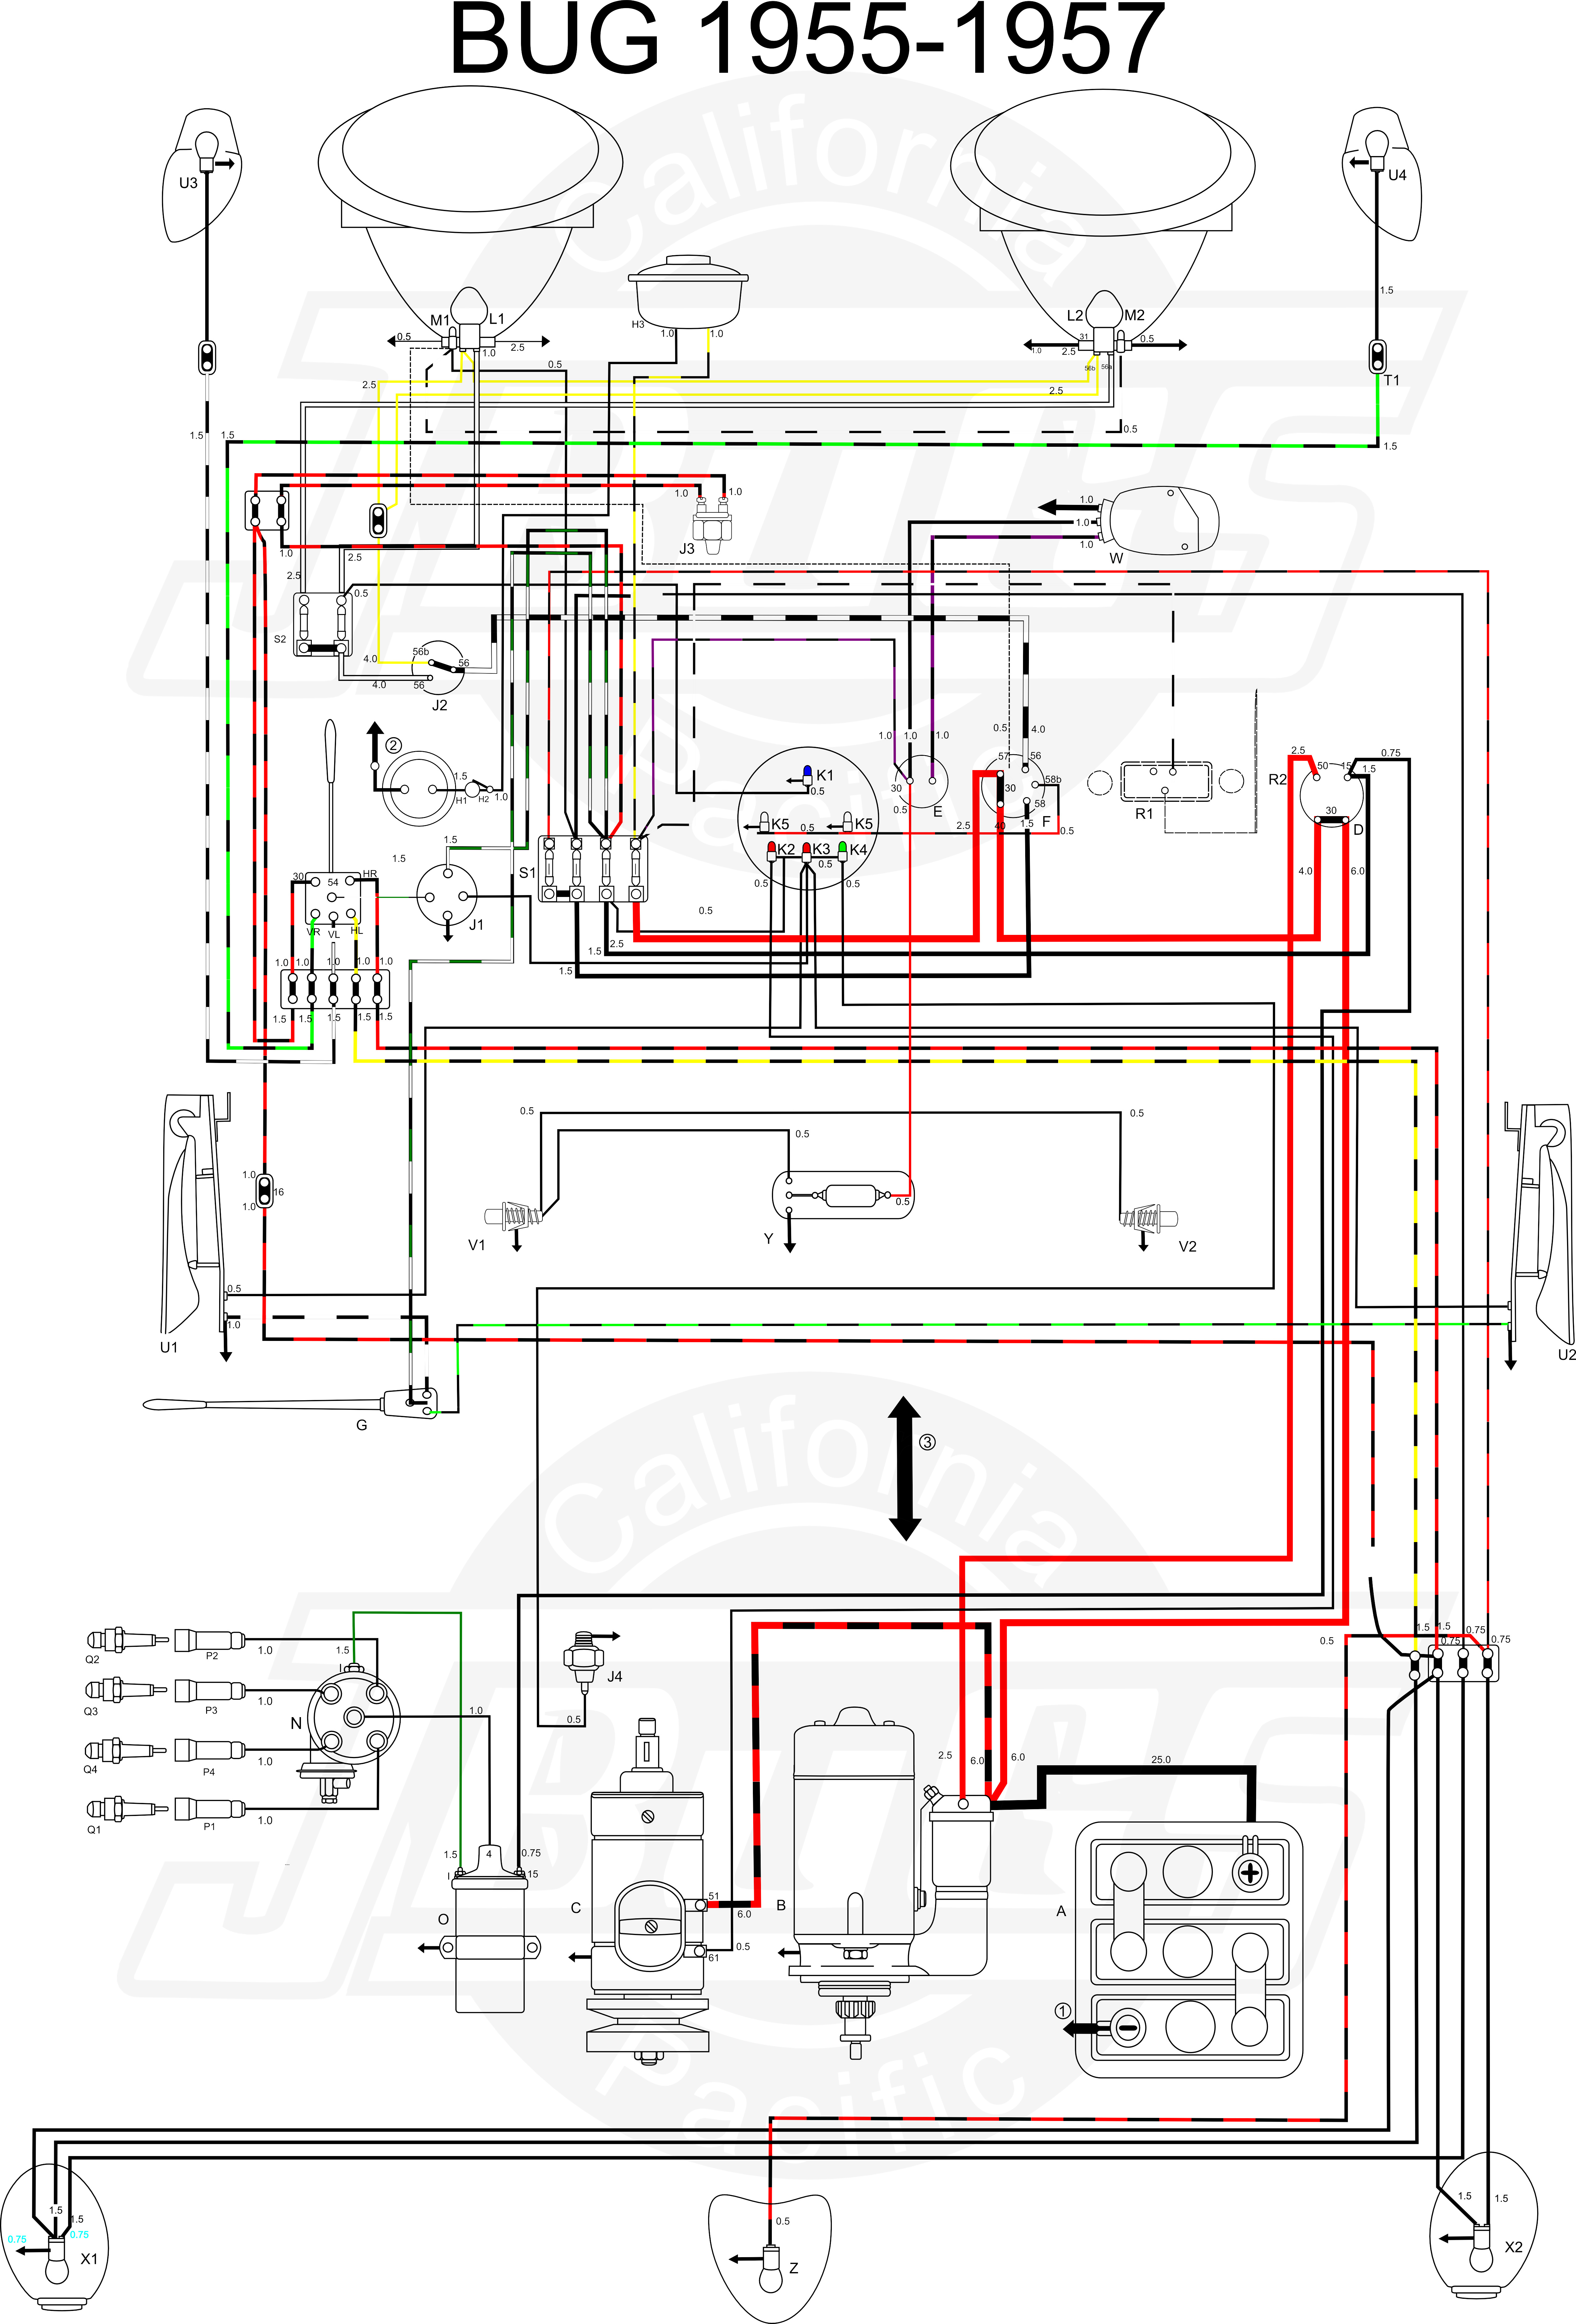 wiring diagram for air cooled vw online schematic diagram u2022 rh holyoak co 73 VW Beetle Wiring Diagram 1973 VW Beetle Wiring Diagram